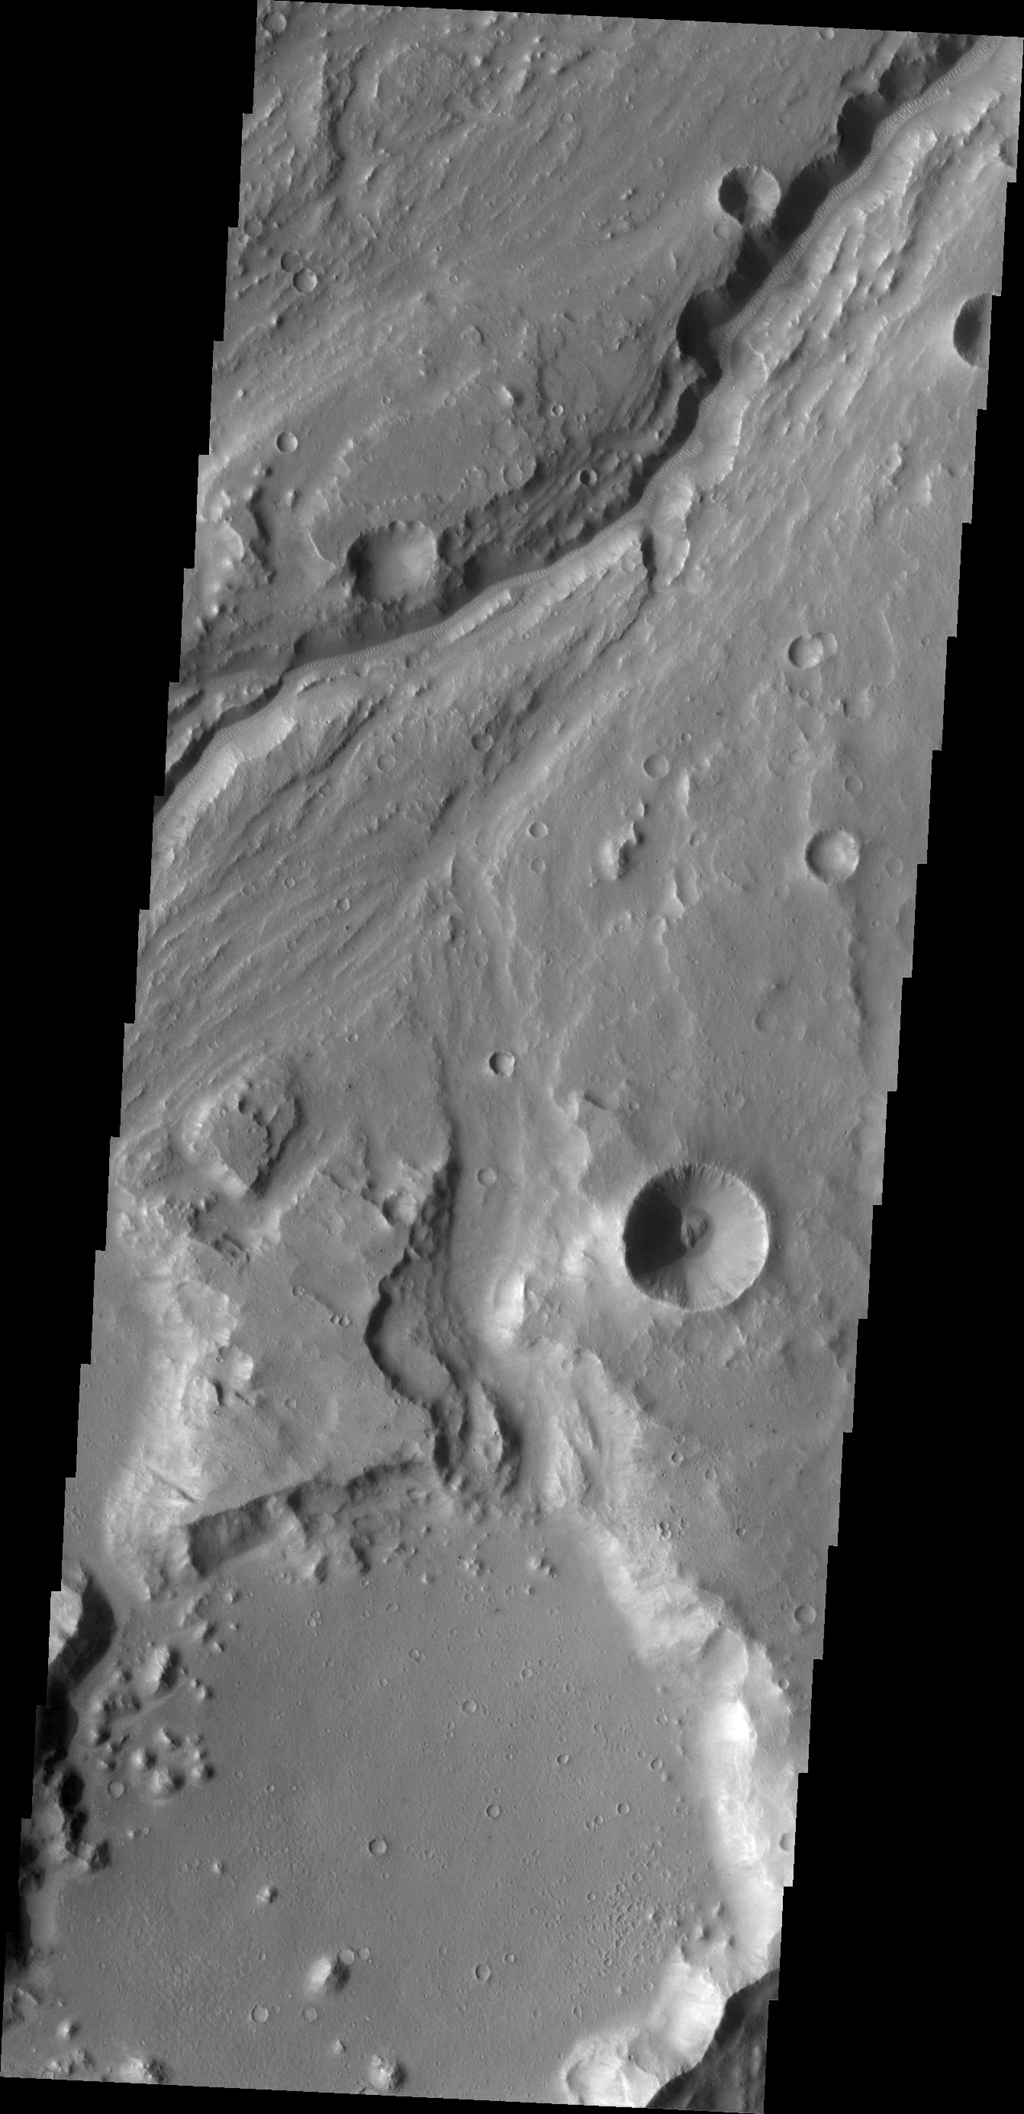 This image captured by NASA's 2001 Mars Odyssey spacecraft shows a portion of Maja Valles.